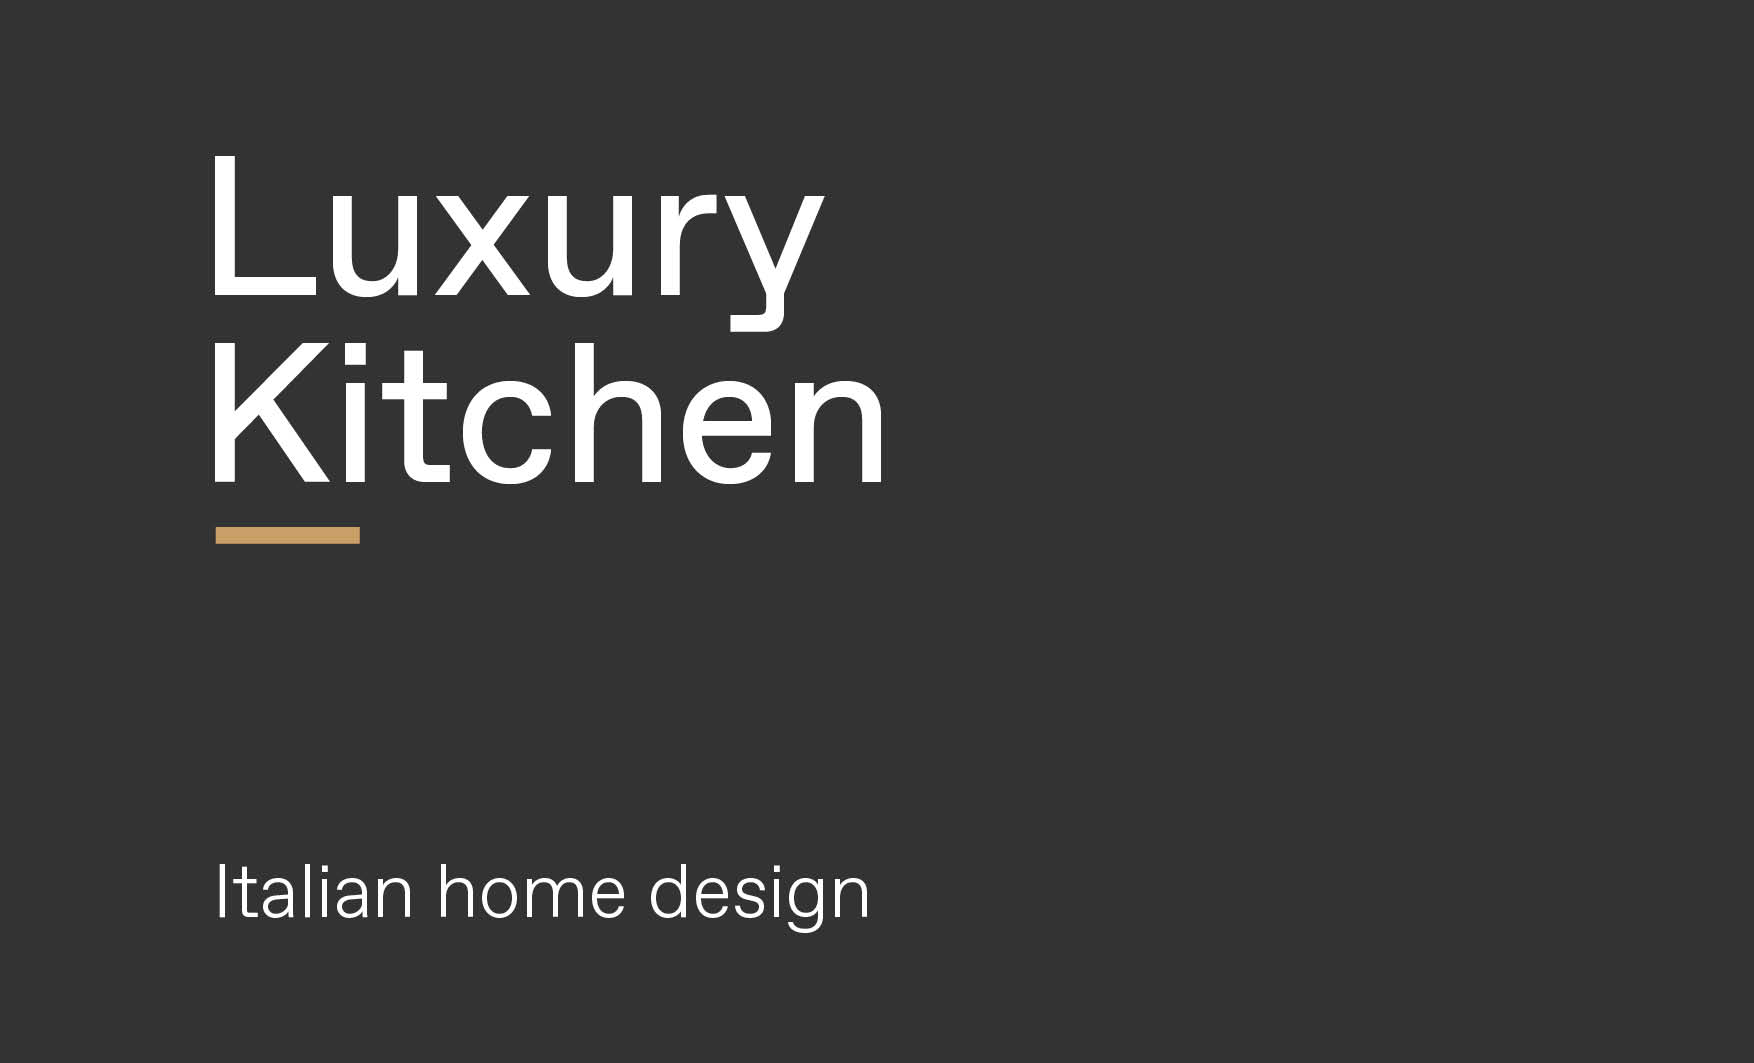 Concept of luxury modern kitchen design made by Esperiri team